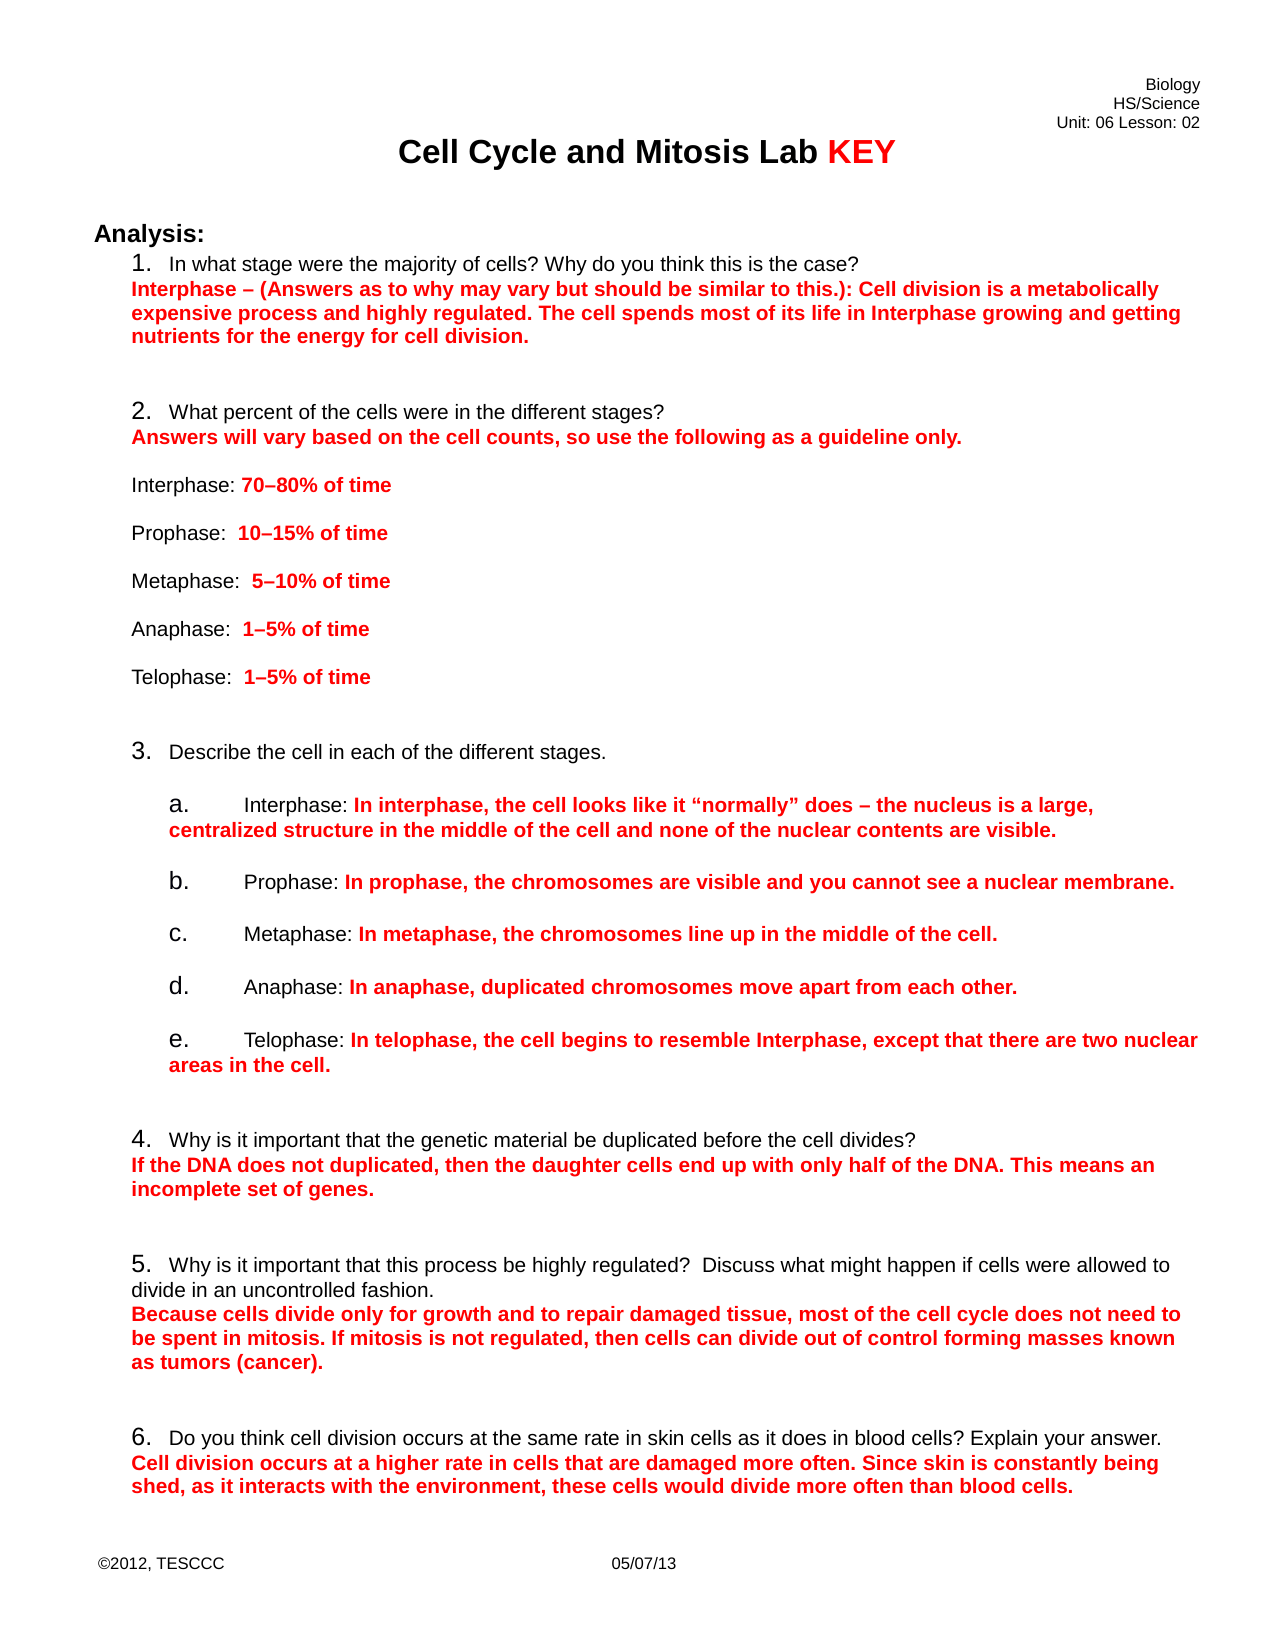 Cell Reproduction Mitosis And Meiosis Worksheet Answer Key